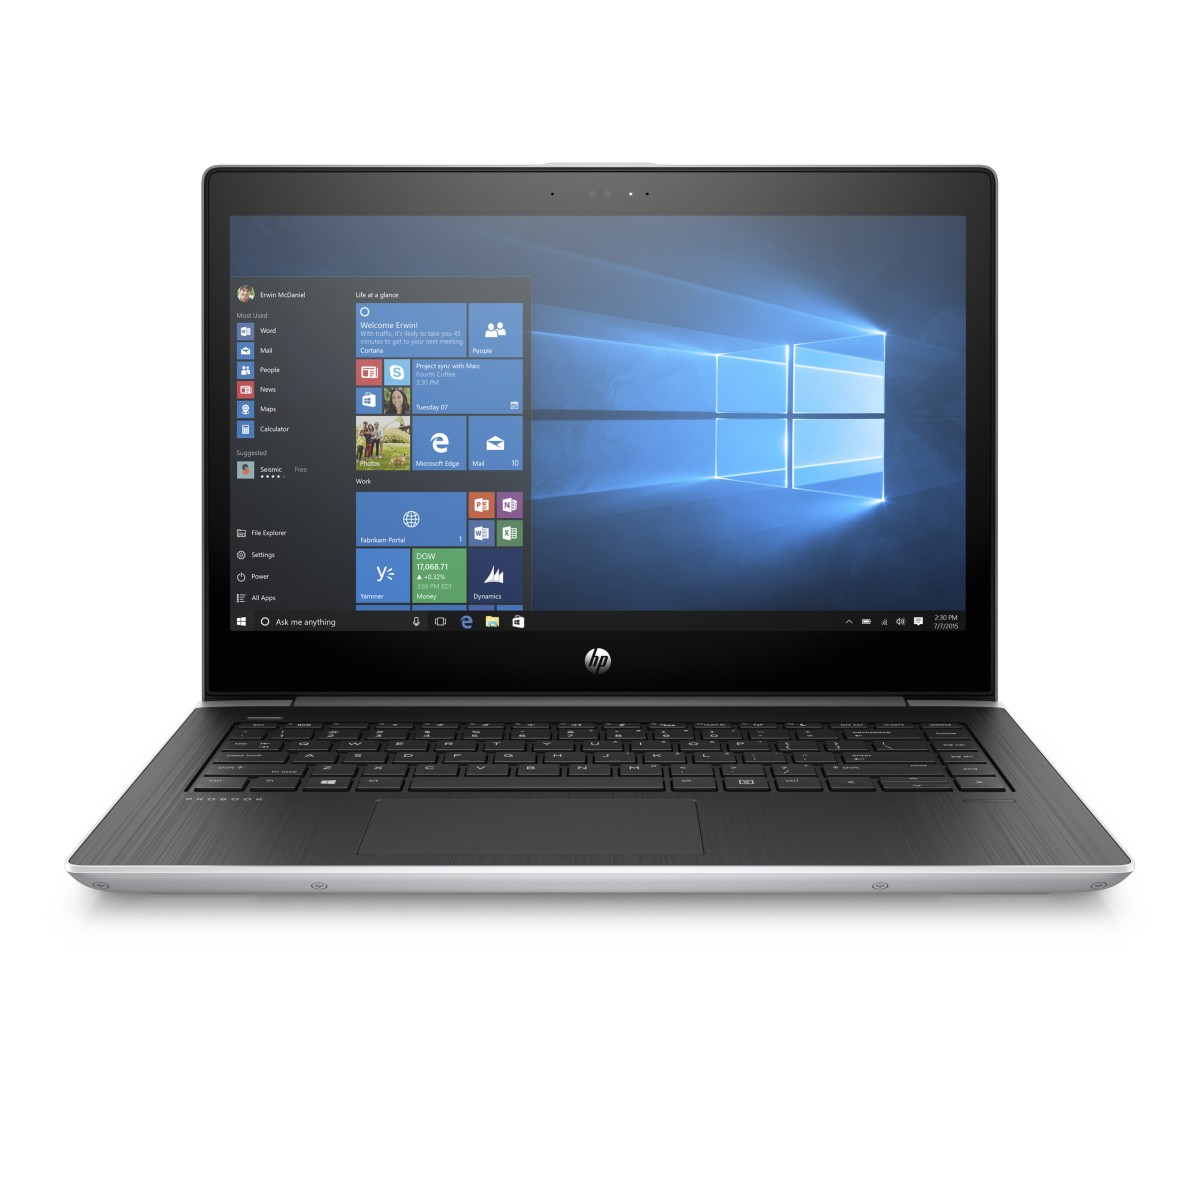 "HP ProBook 450 G5/ i5-8250U/ 8GB DDR4/ 256GB SSD +2,5""/ GeForce 930MX 2GB/ 15,6"" FHD UWVA/ W10H/ sea model/ stříbrný"